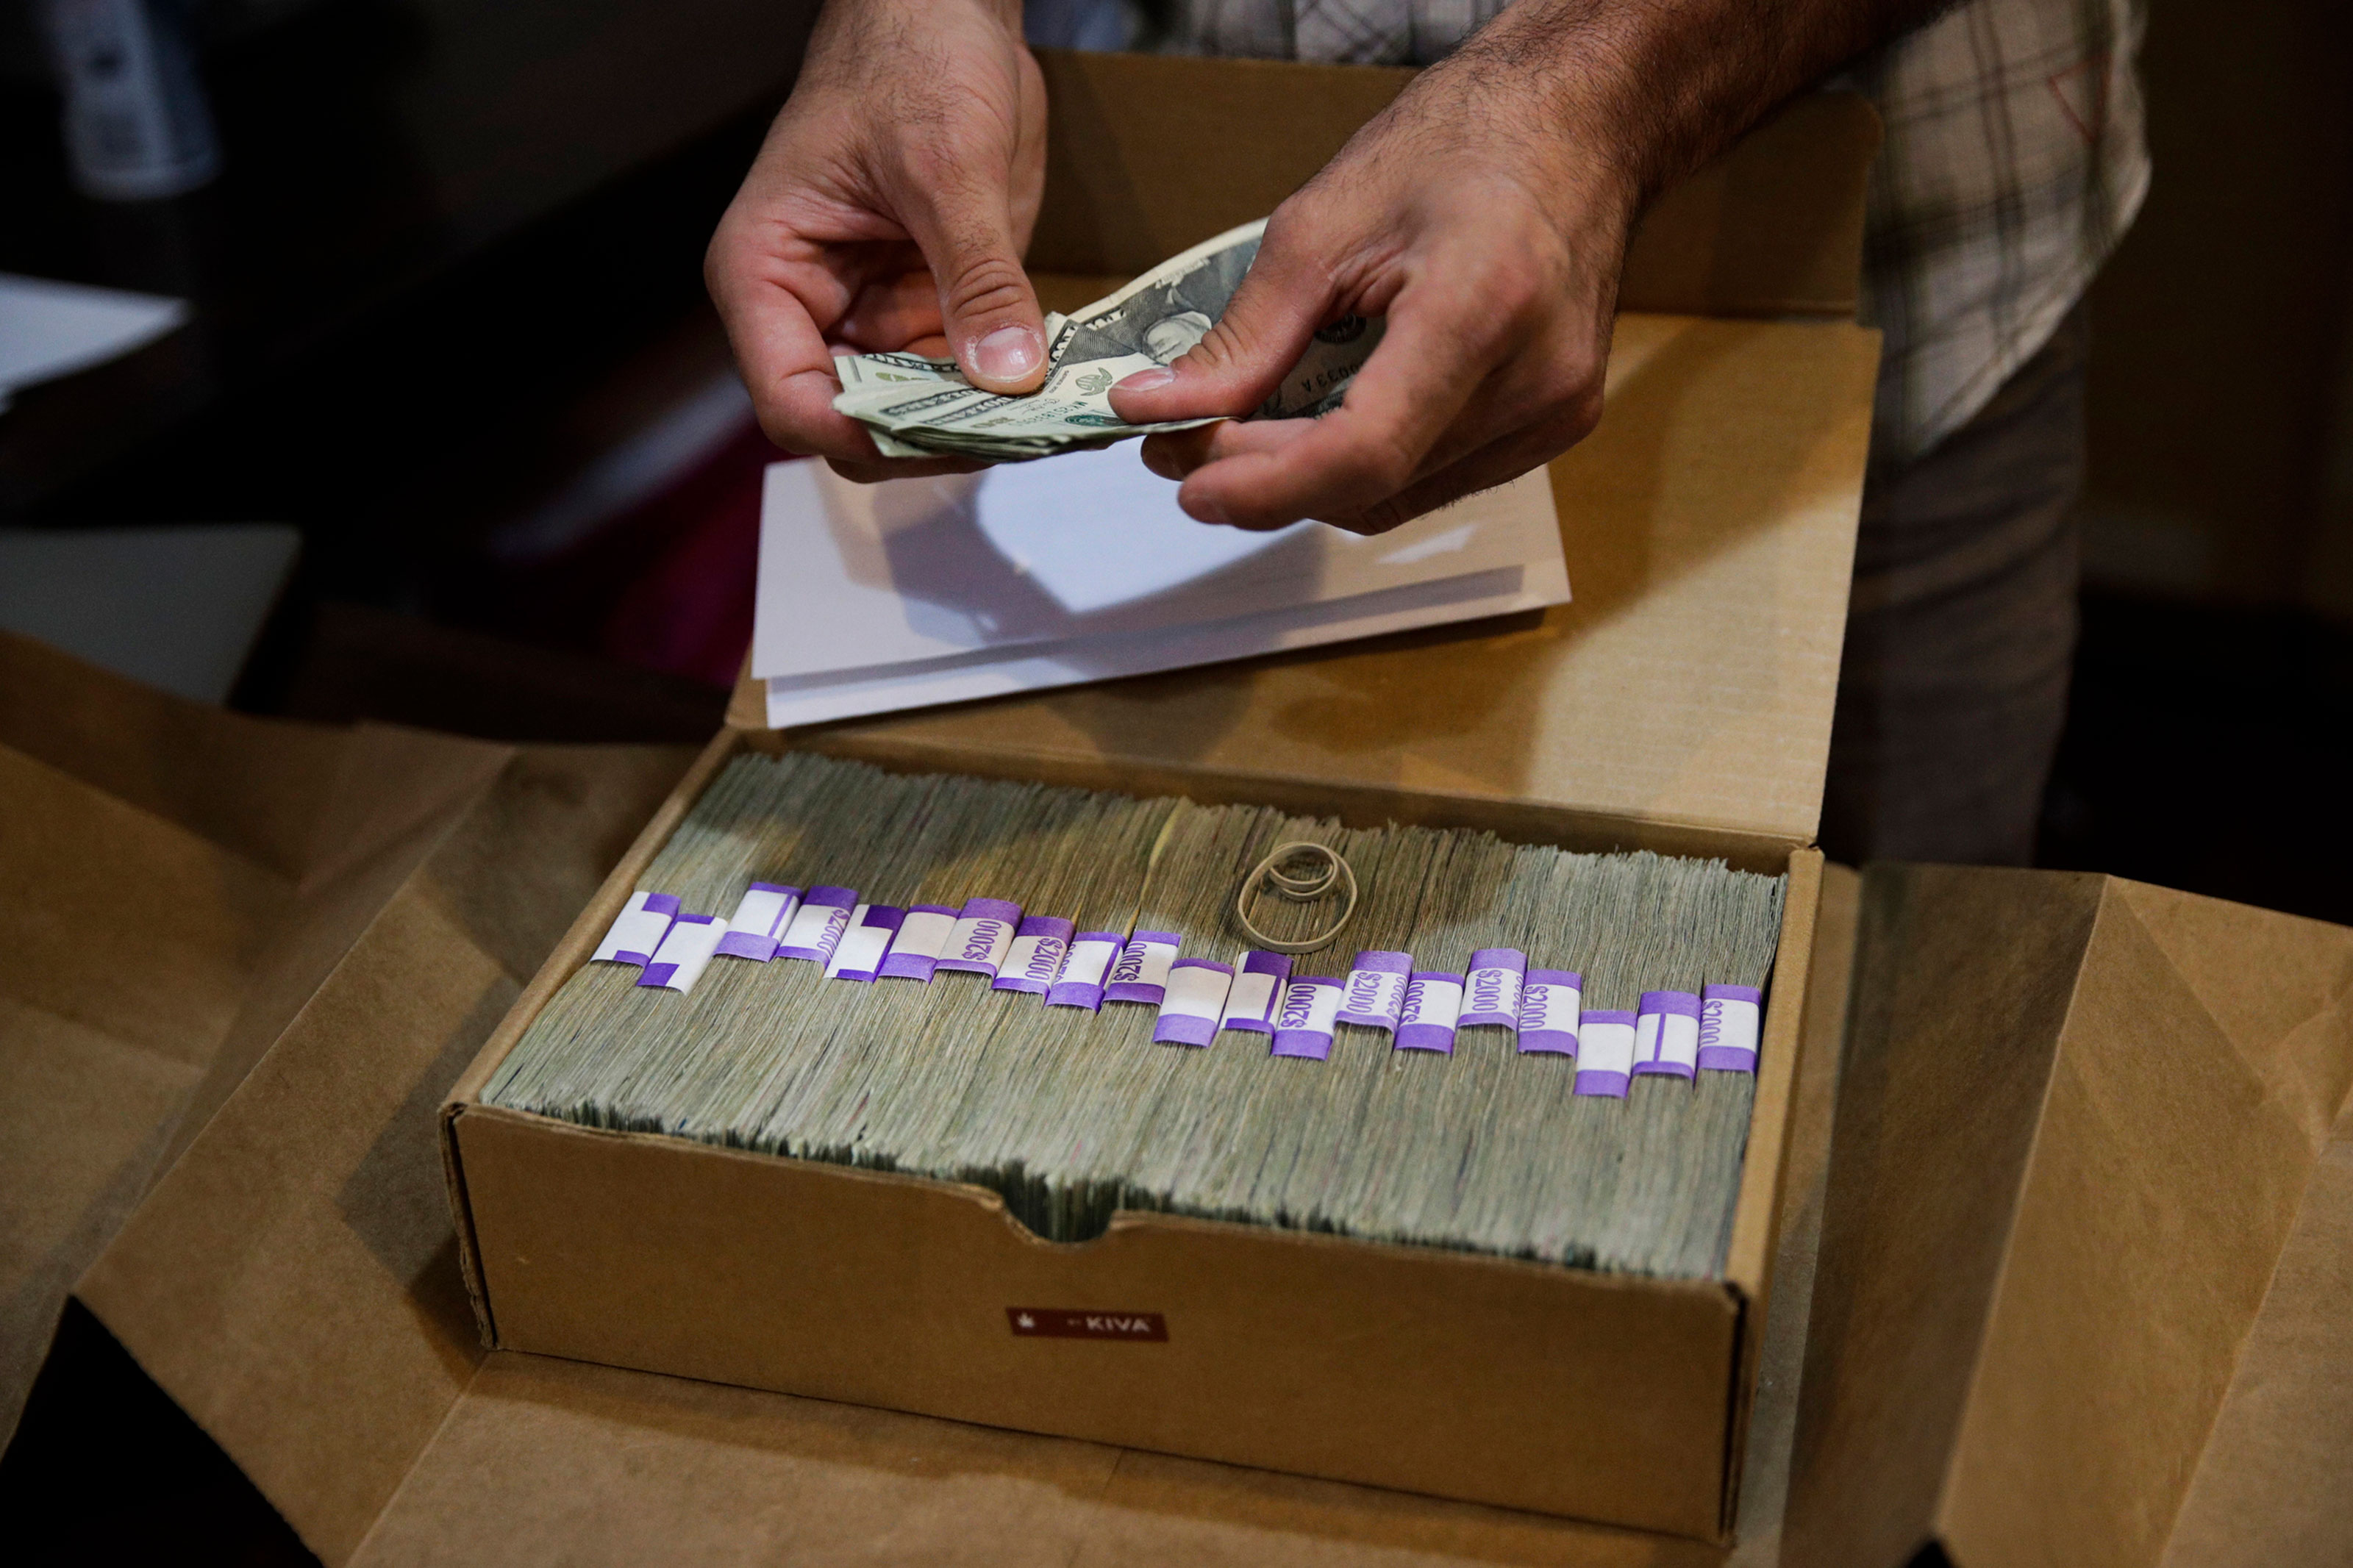 The proprietor of a medical marijuana dispensary prepares his monthly tax payment, over $40,000 in cash, at his Los Angeles store, June 27, 2017.